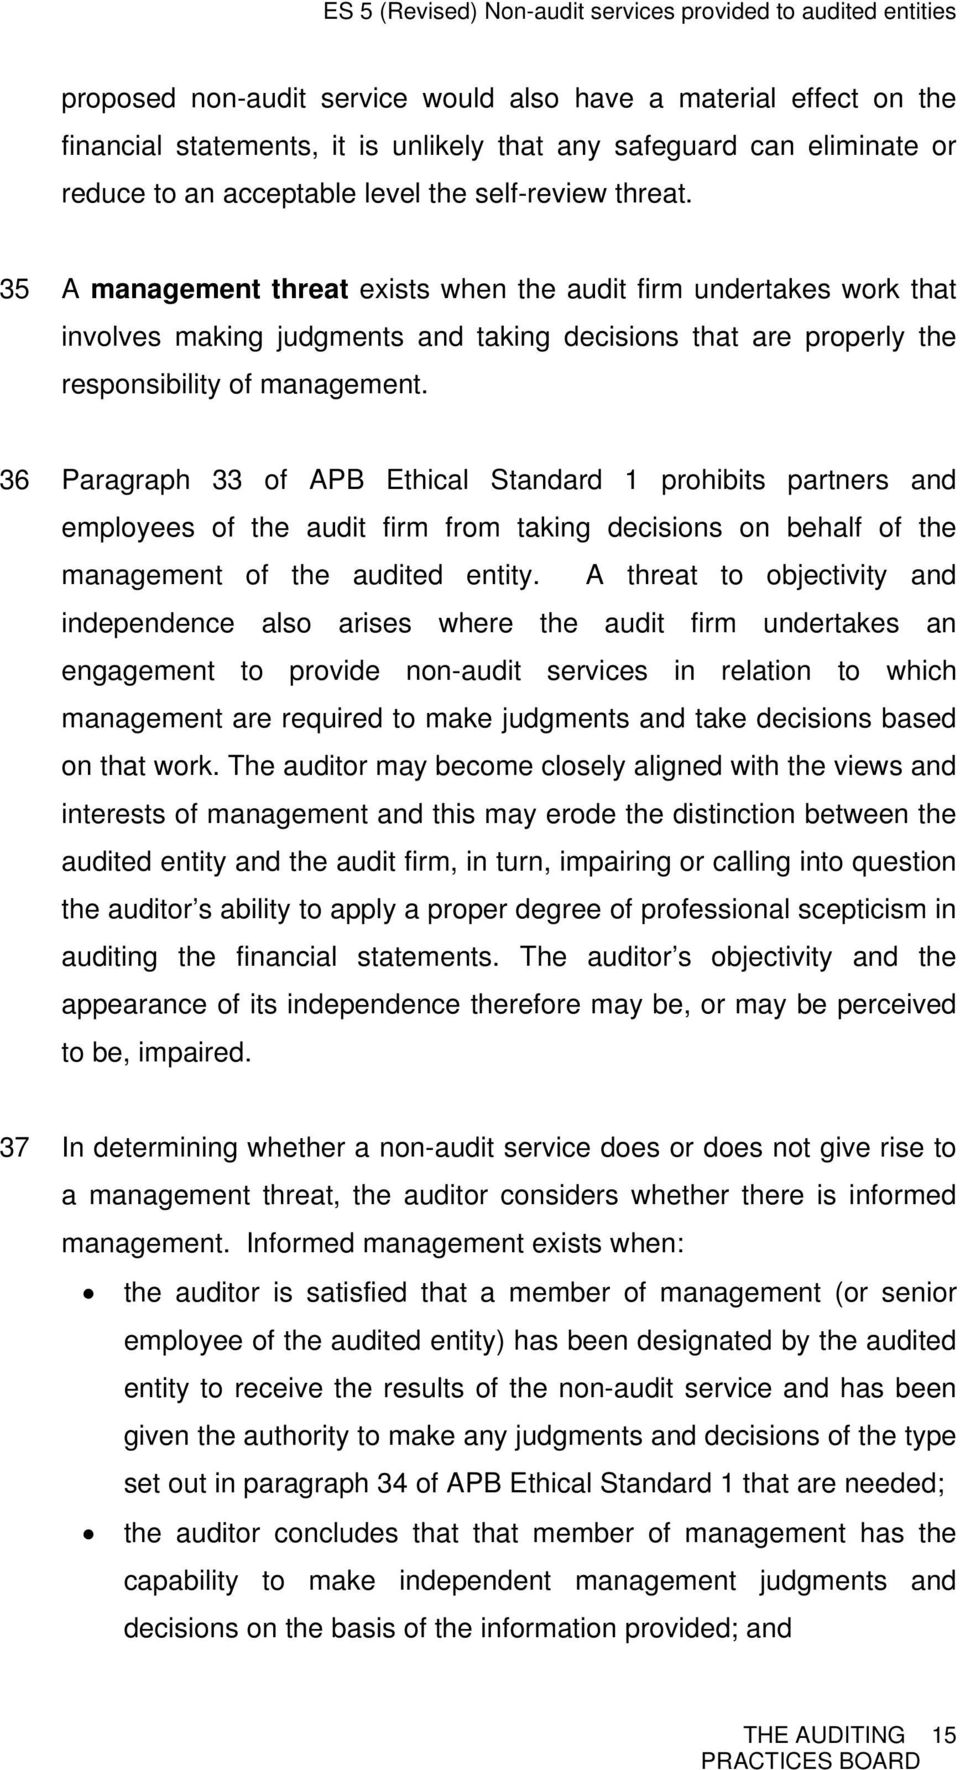 36 Paragraph 33 of APB Ethical Standard 1 prohibits partners and employees of the audit firm from taking decisions on behalf of the management of the audited entity.